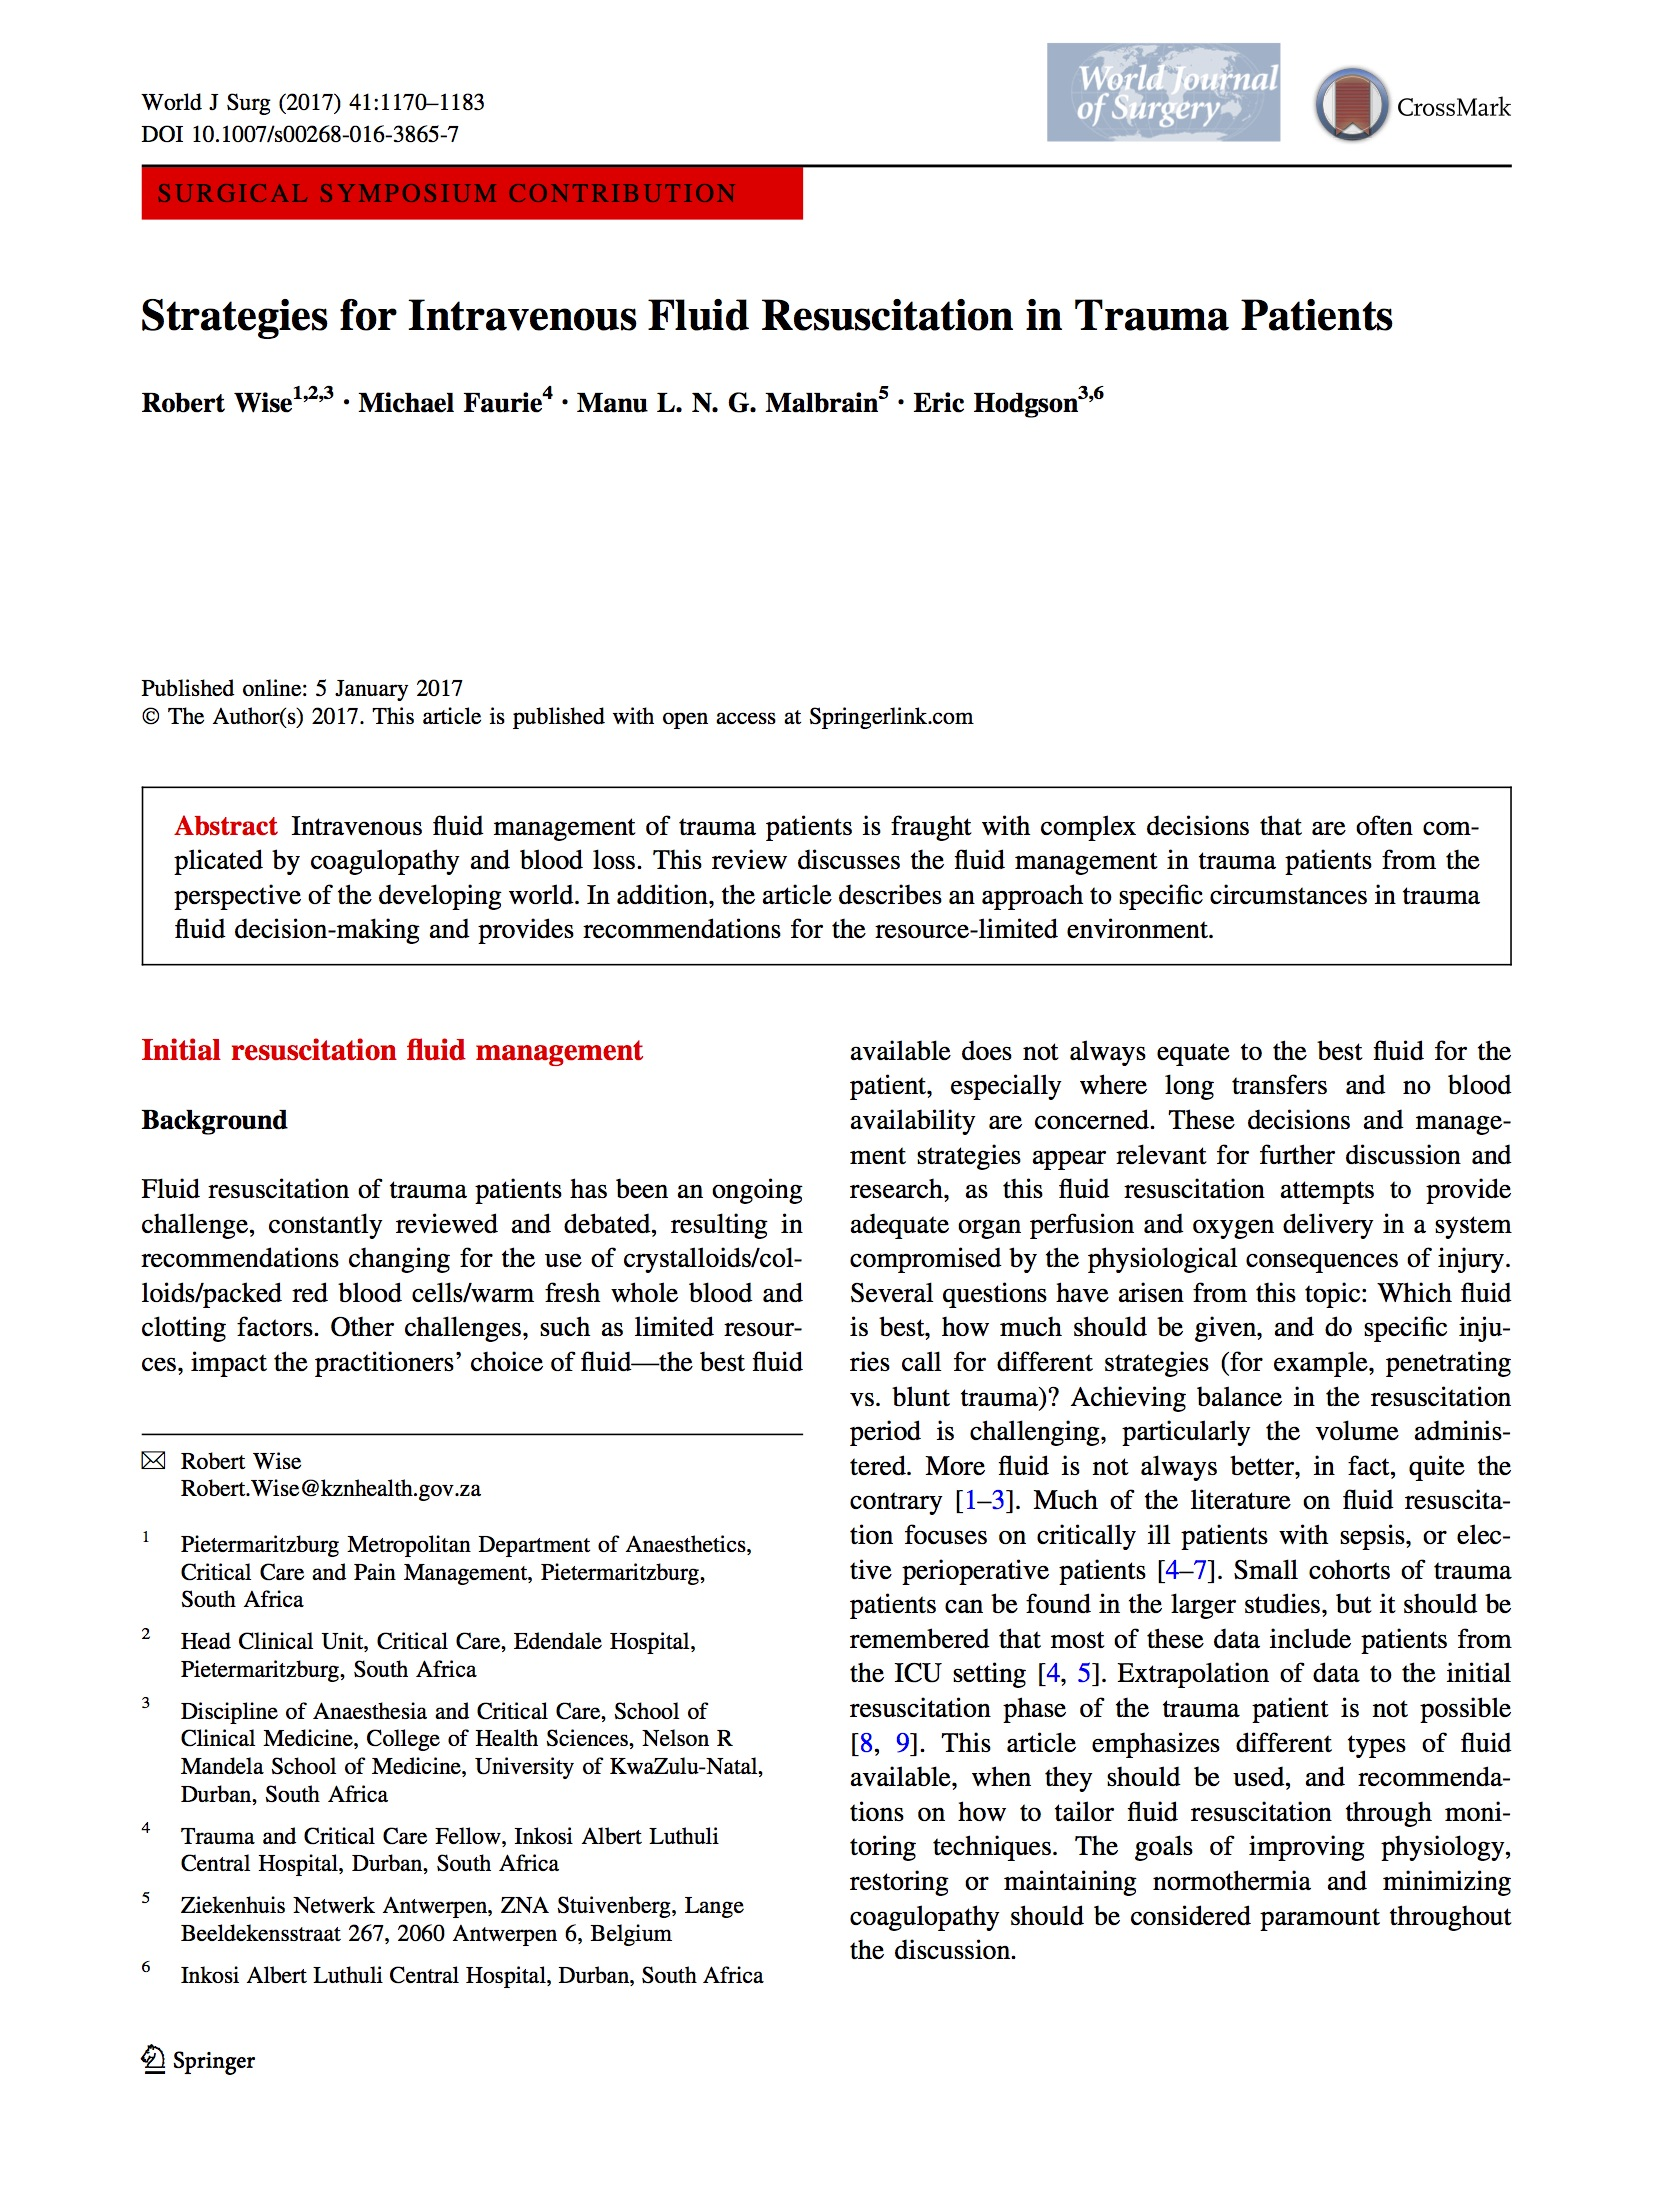 iFA research trauma cover page